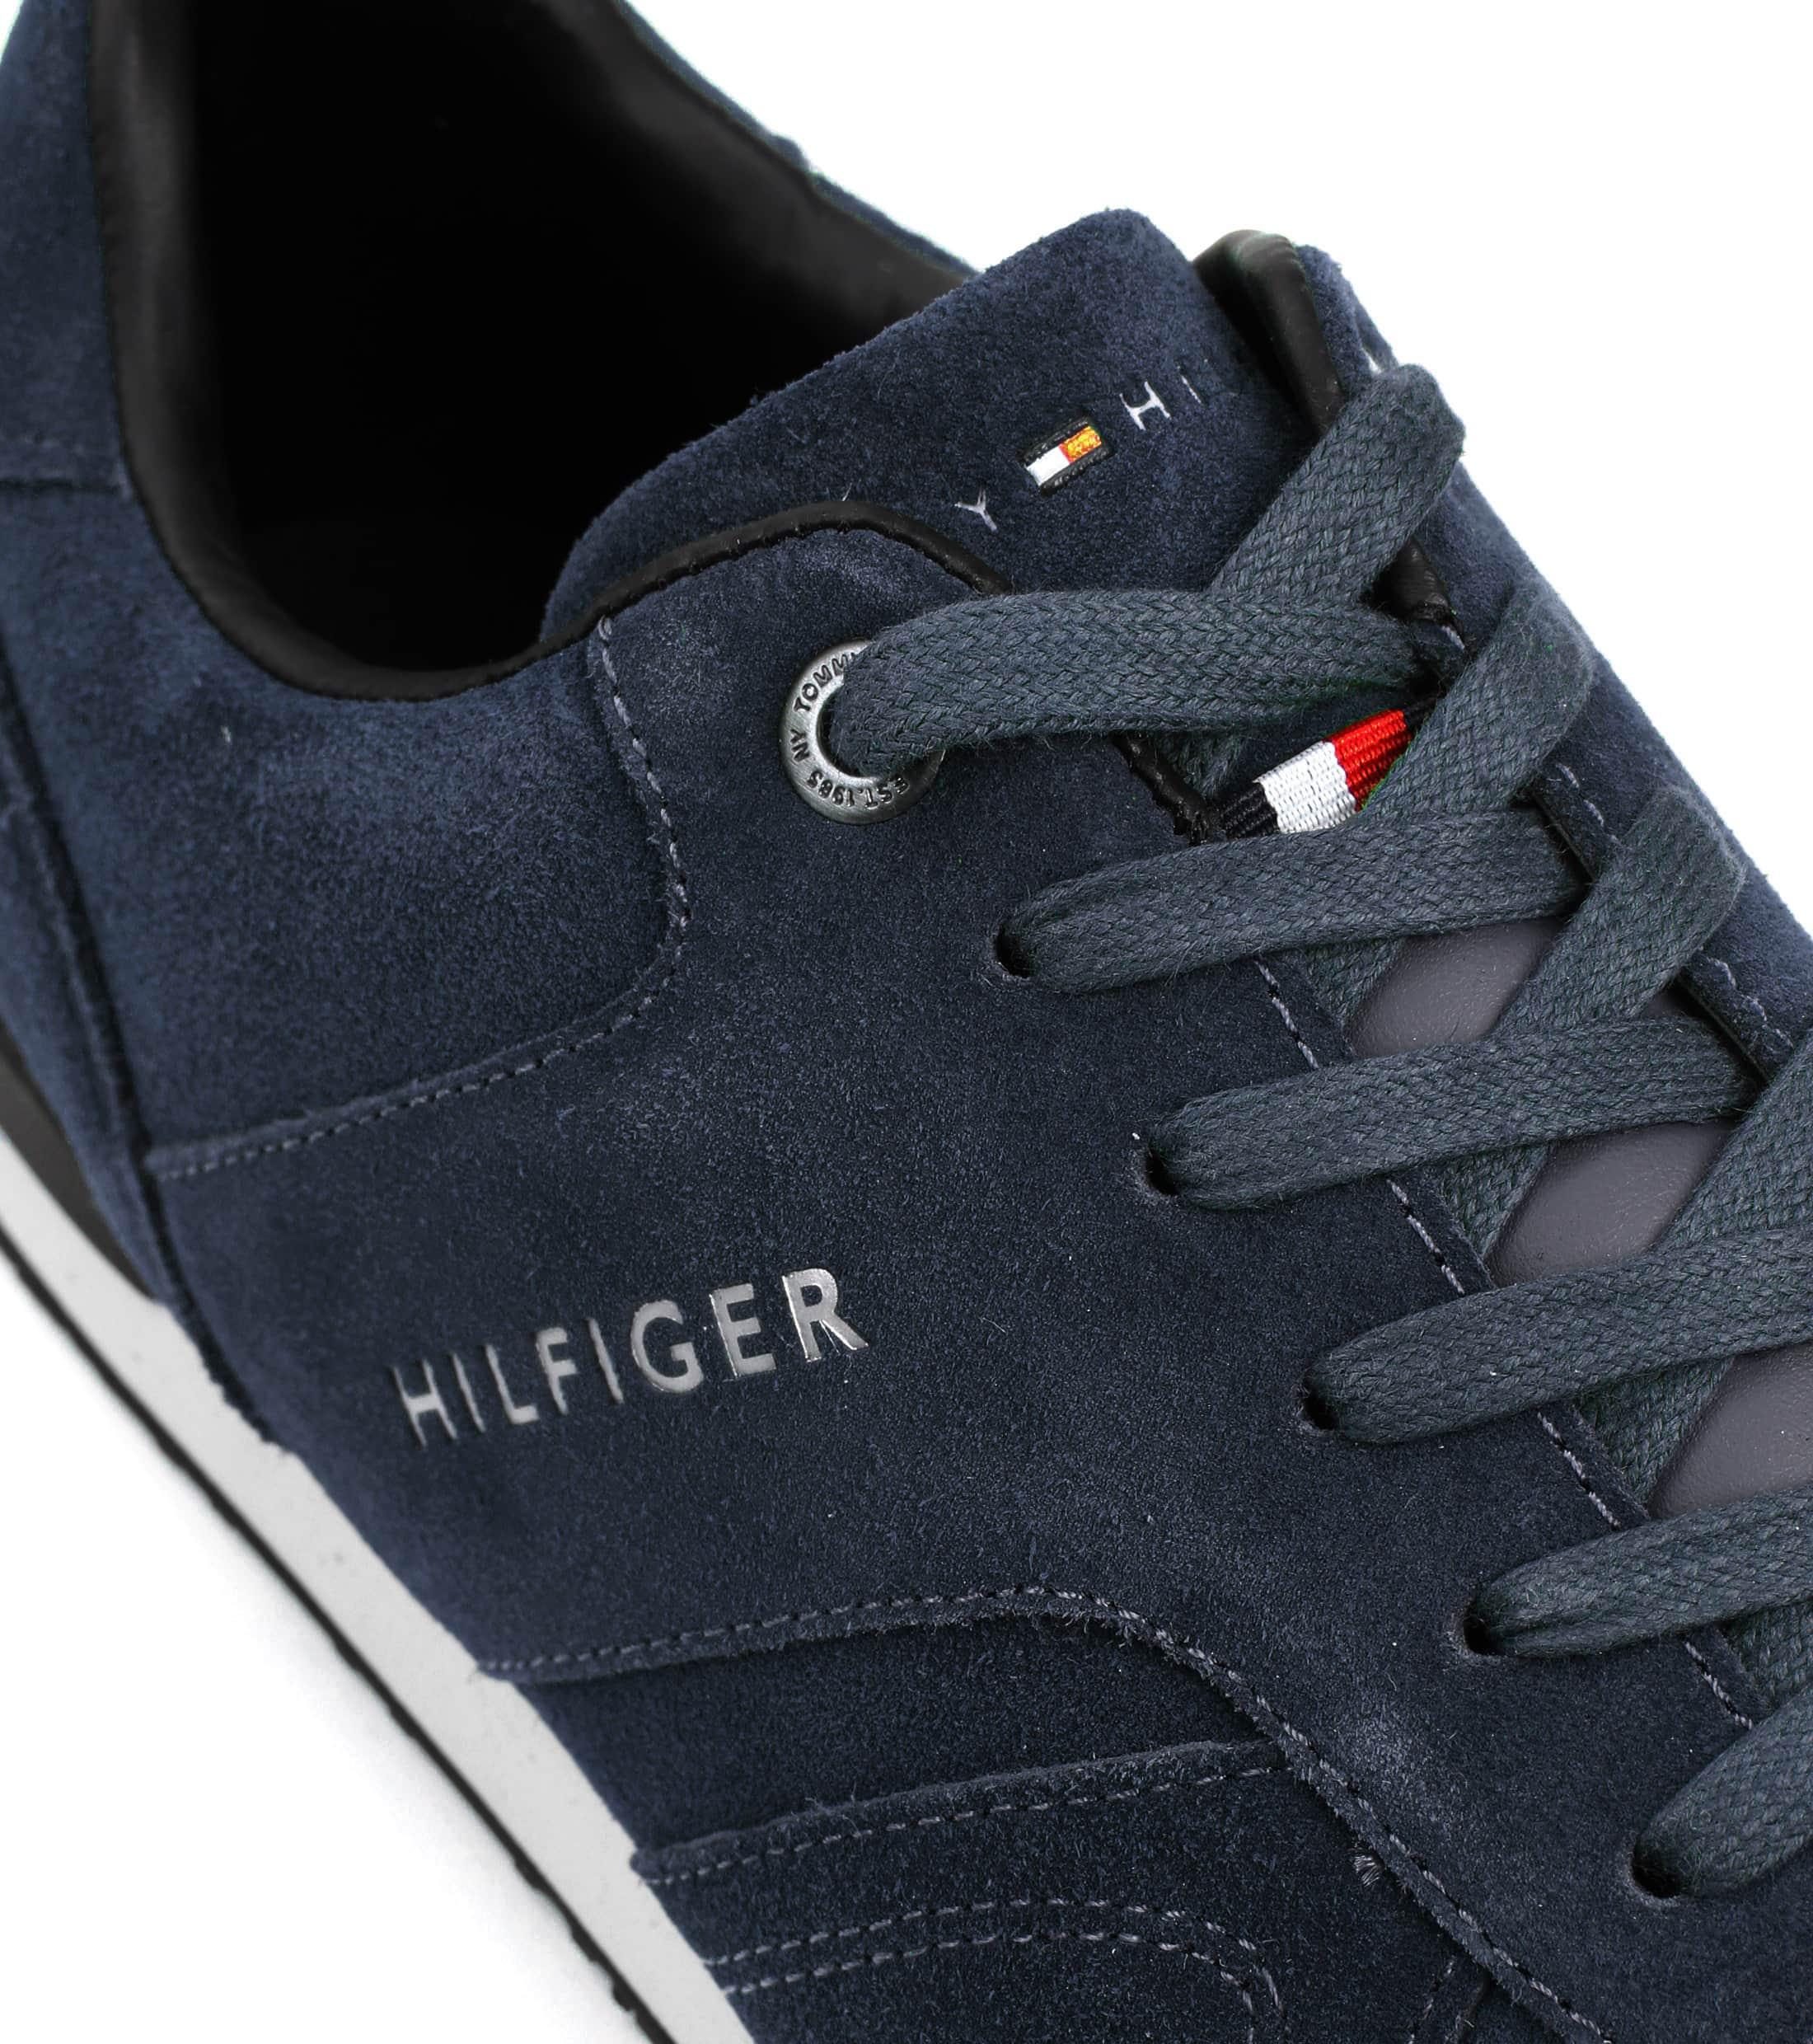 Tommy Hilfiger Sneaker Navy Night foto 1